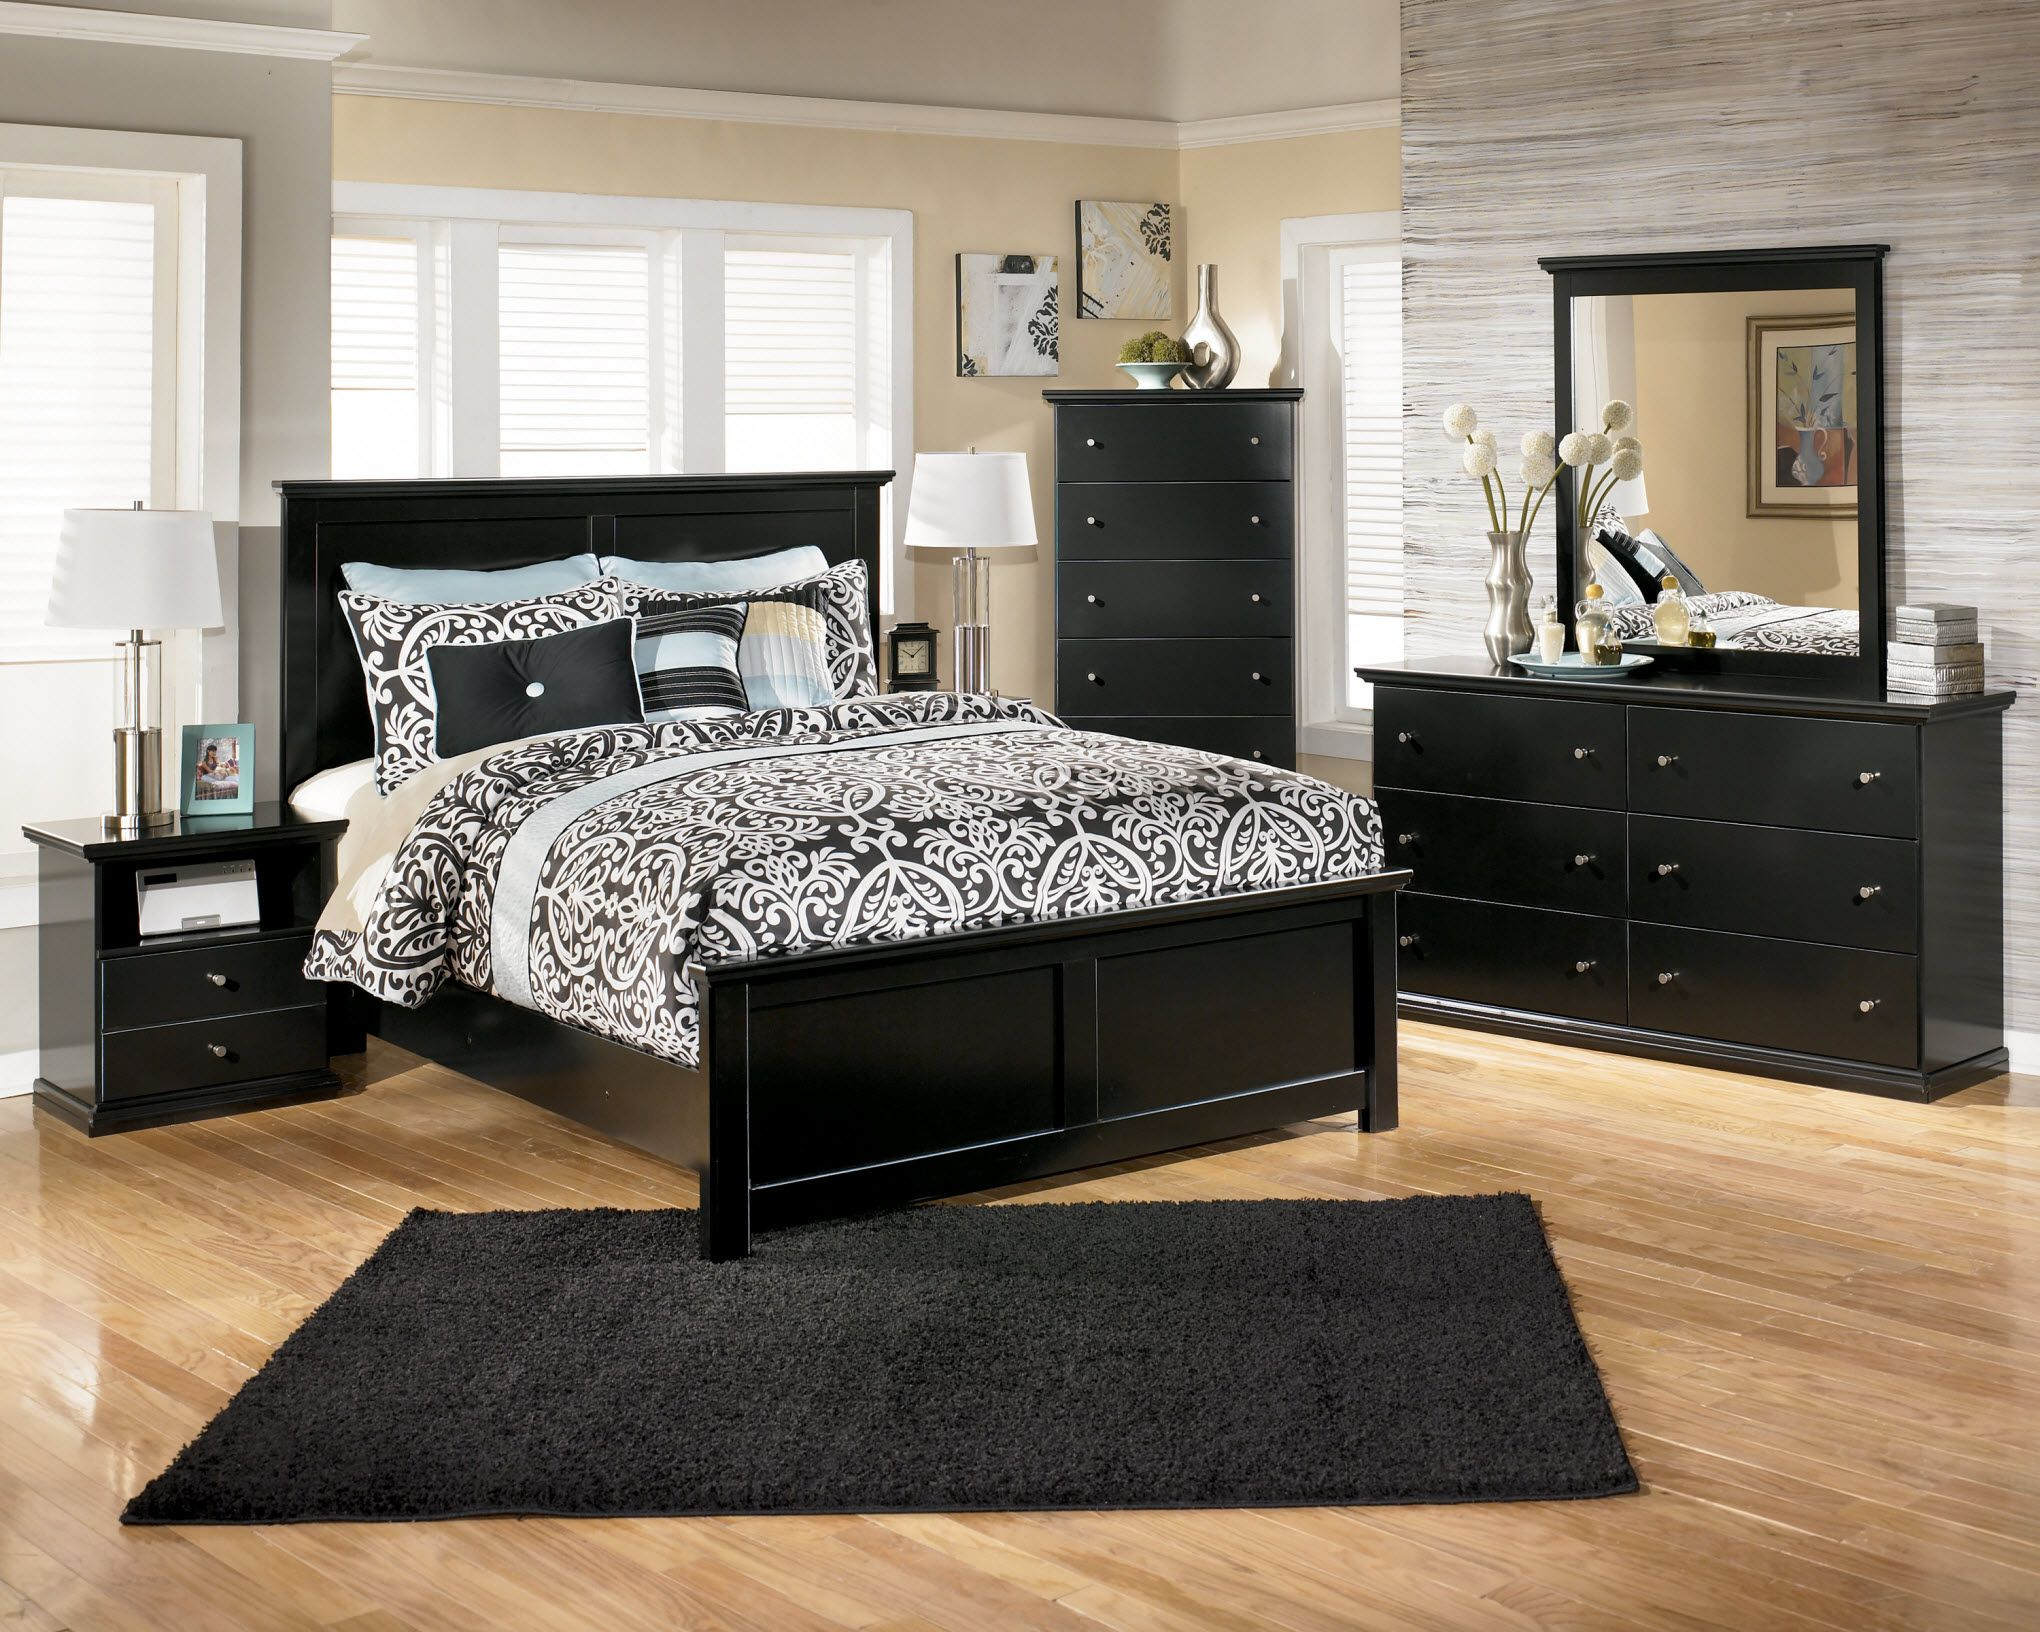 15 cool black bedroom furniture sets for bold feeling | bedrooms